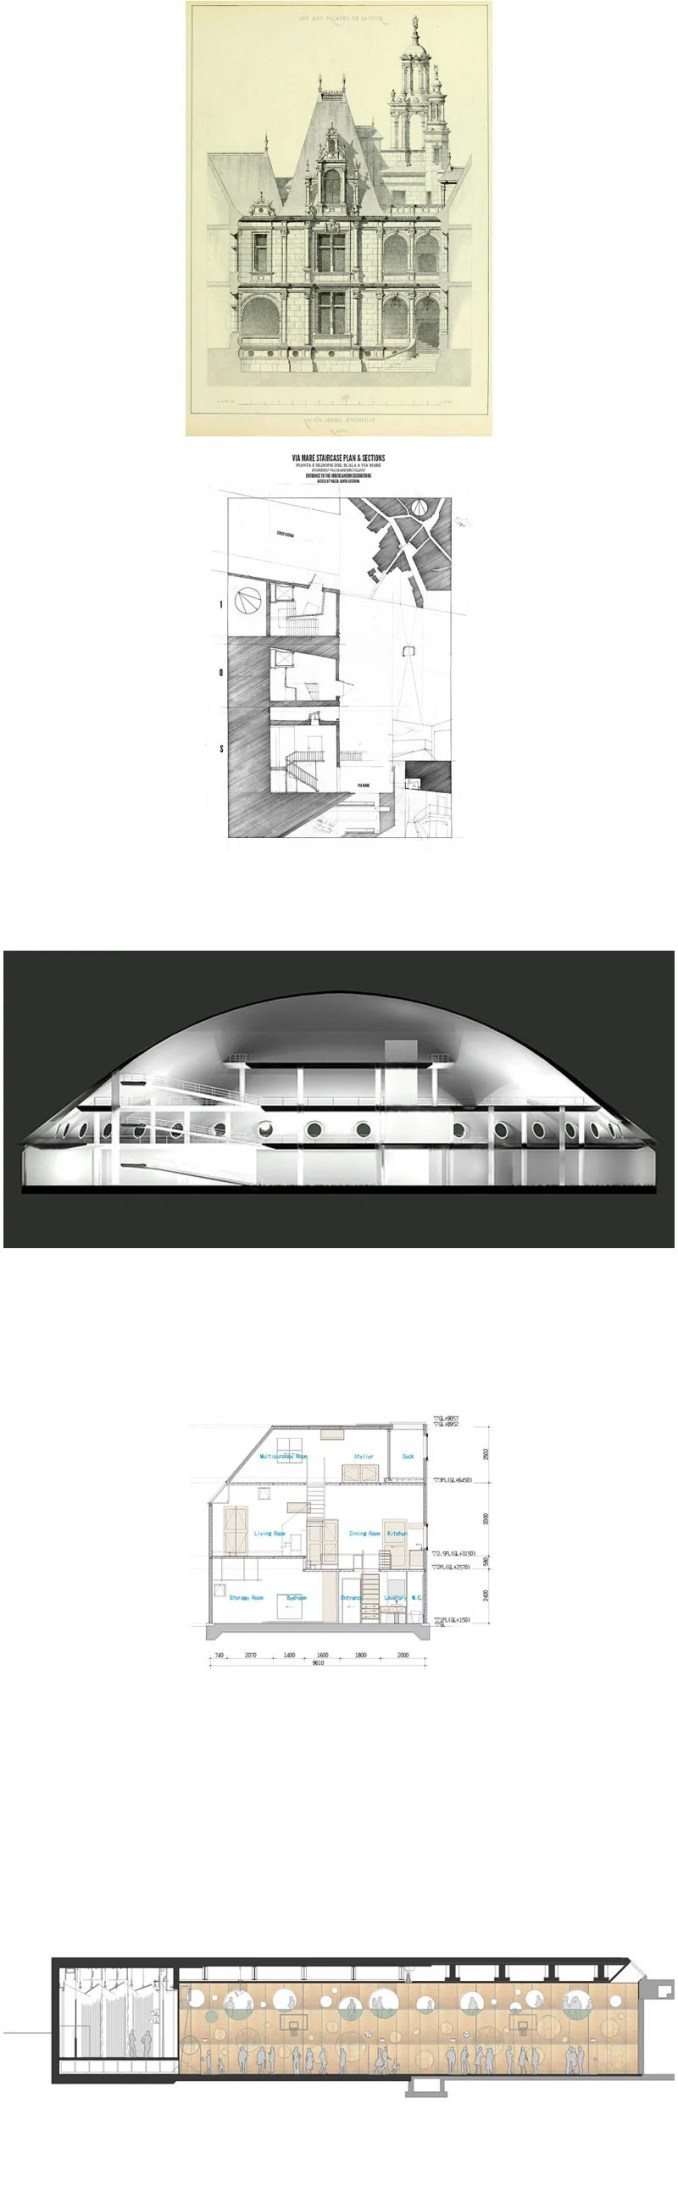 Architectural sections and elevations Gallery V.2